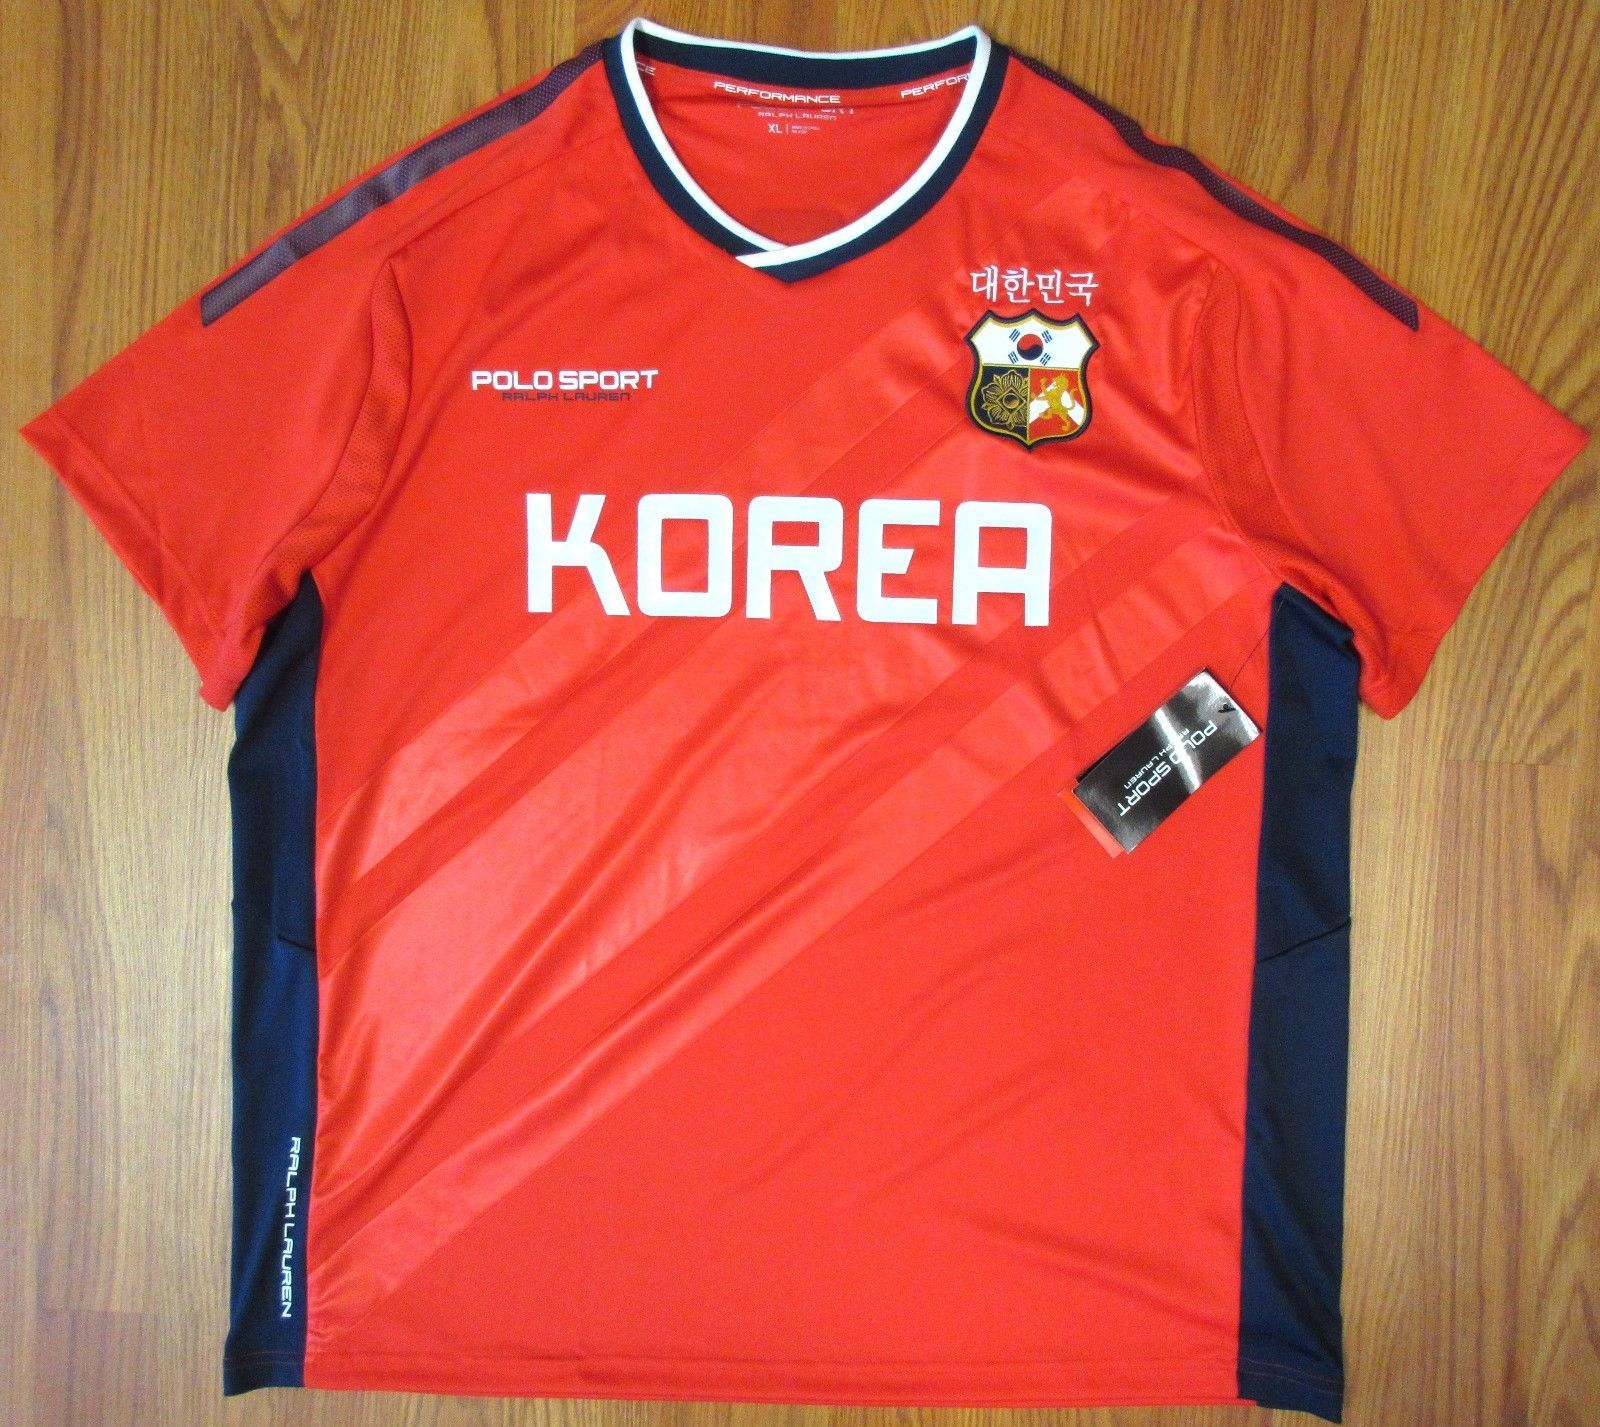 POLO SPORT PERFORMANCE RALPH LAUREN SOUTH KOREA SOCCER JERSEY XL X-LARGE d666eb397